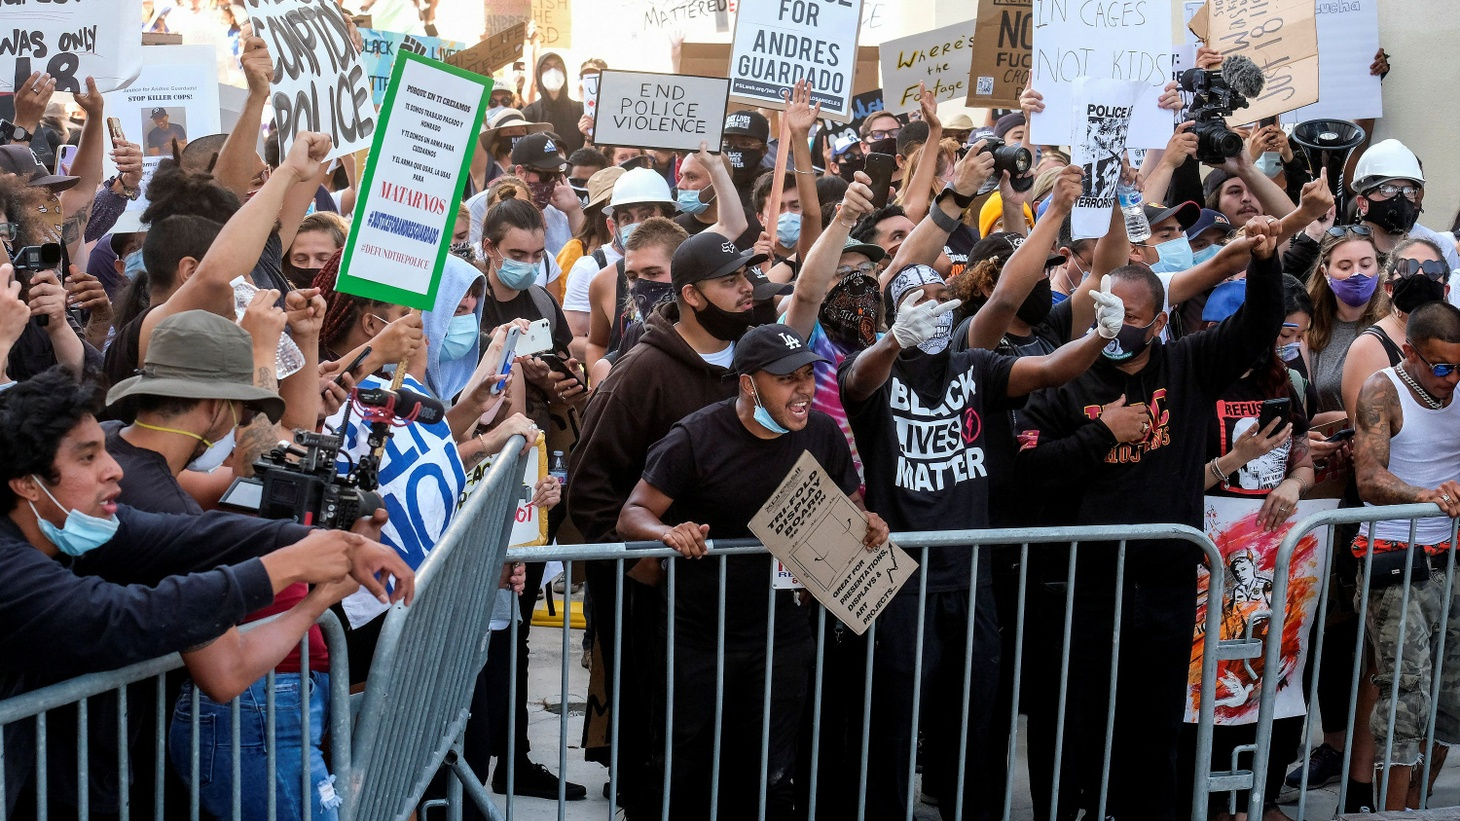 Demonstrators confront Los Angeles County sheriff's deputies in a protest against the death of 18-year-old Andres Guardado and racial injustice in Compton, California, U.S., June 21, 2020.